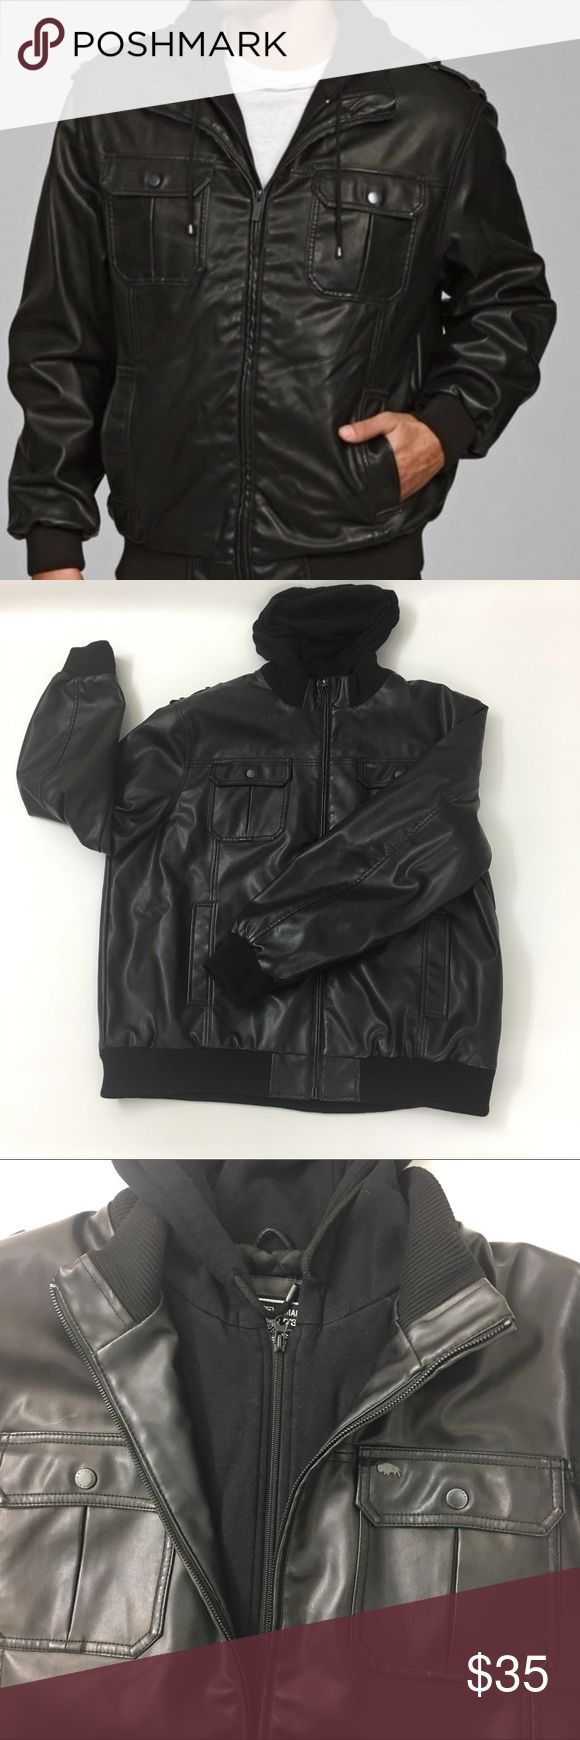 Buffalo by David Bitton Mens Faux Leather Jacket Like New, this Buffalo mens hooded bomber jacket is a stylish addition to any wardrobe. This bomber jacket features a zipper bib detail and an epaulet detail at the shoulder. Color: Black Two lined slash pockets, two chest button flap pockets Stand collar Front zipper entry Fully lined Buffalo David Bitton Jackets  Coats Bomber  Varsity